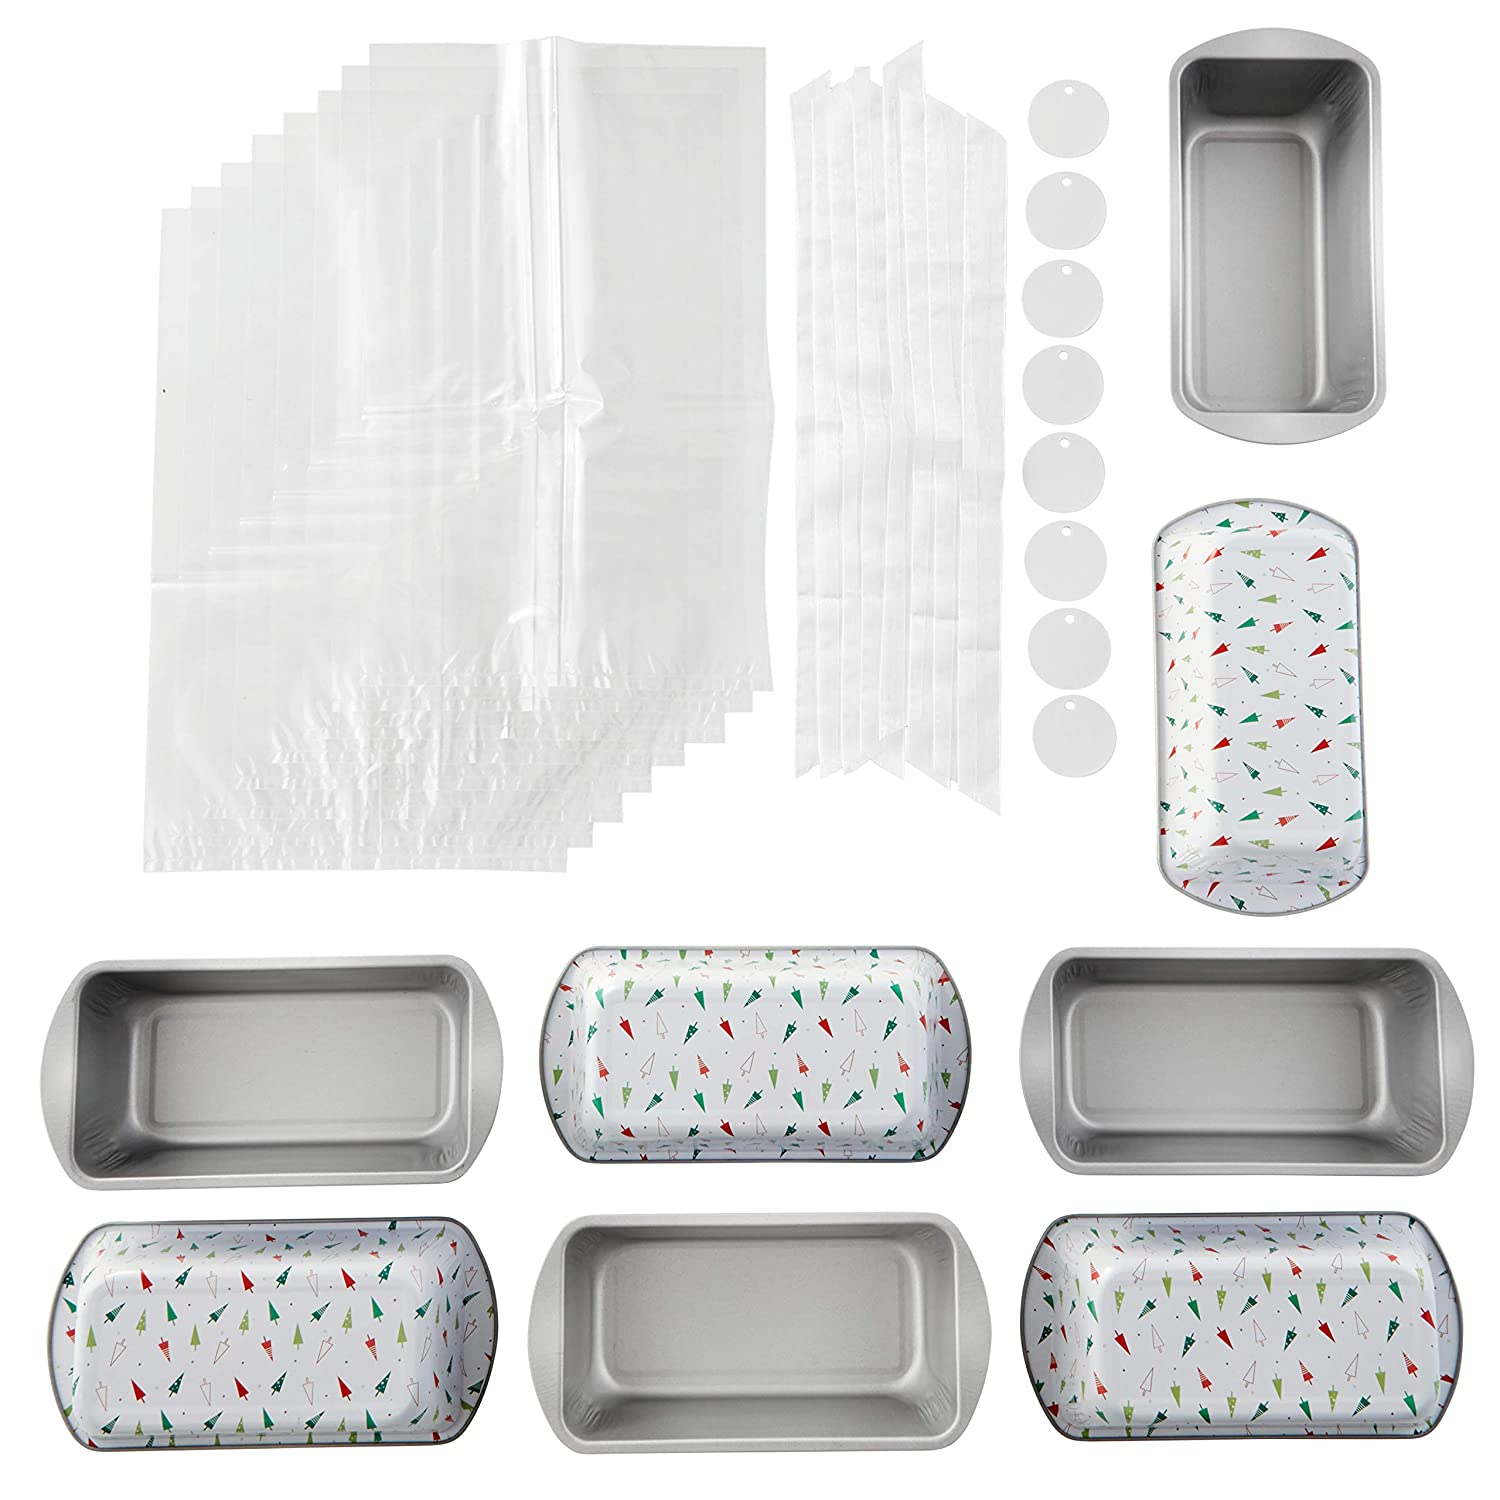 Wilton Bake and Bring Holiday Print Non-Stick Loaf Pans Gifting Kit, 10-Piece 2105-0-0032